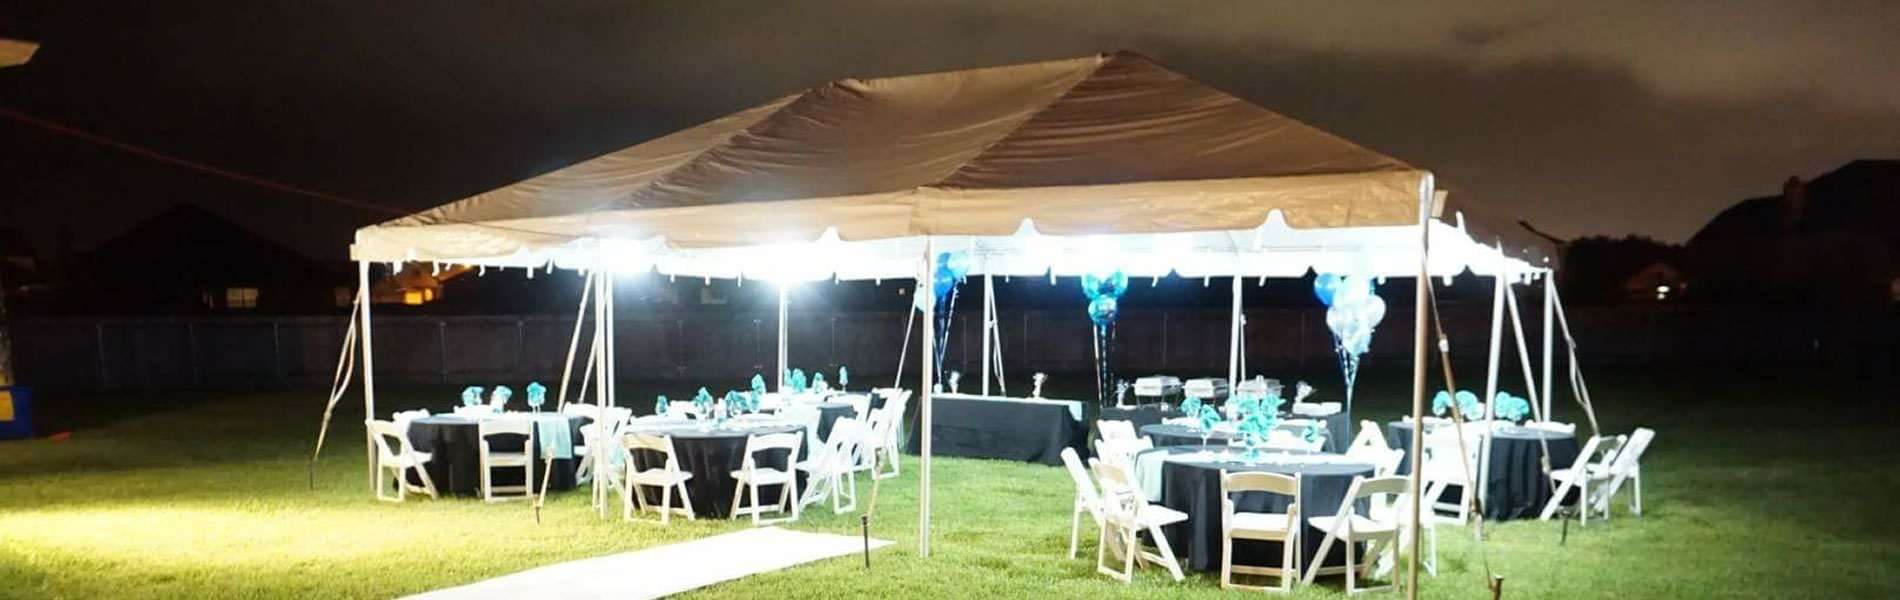 Wedding & Party Rentals